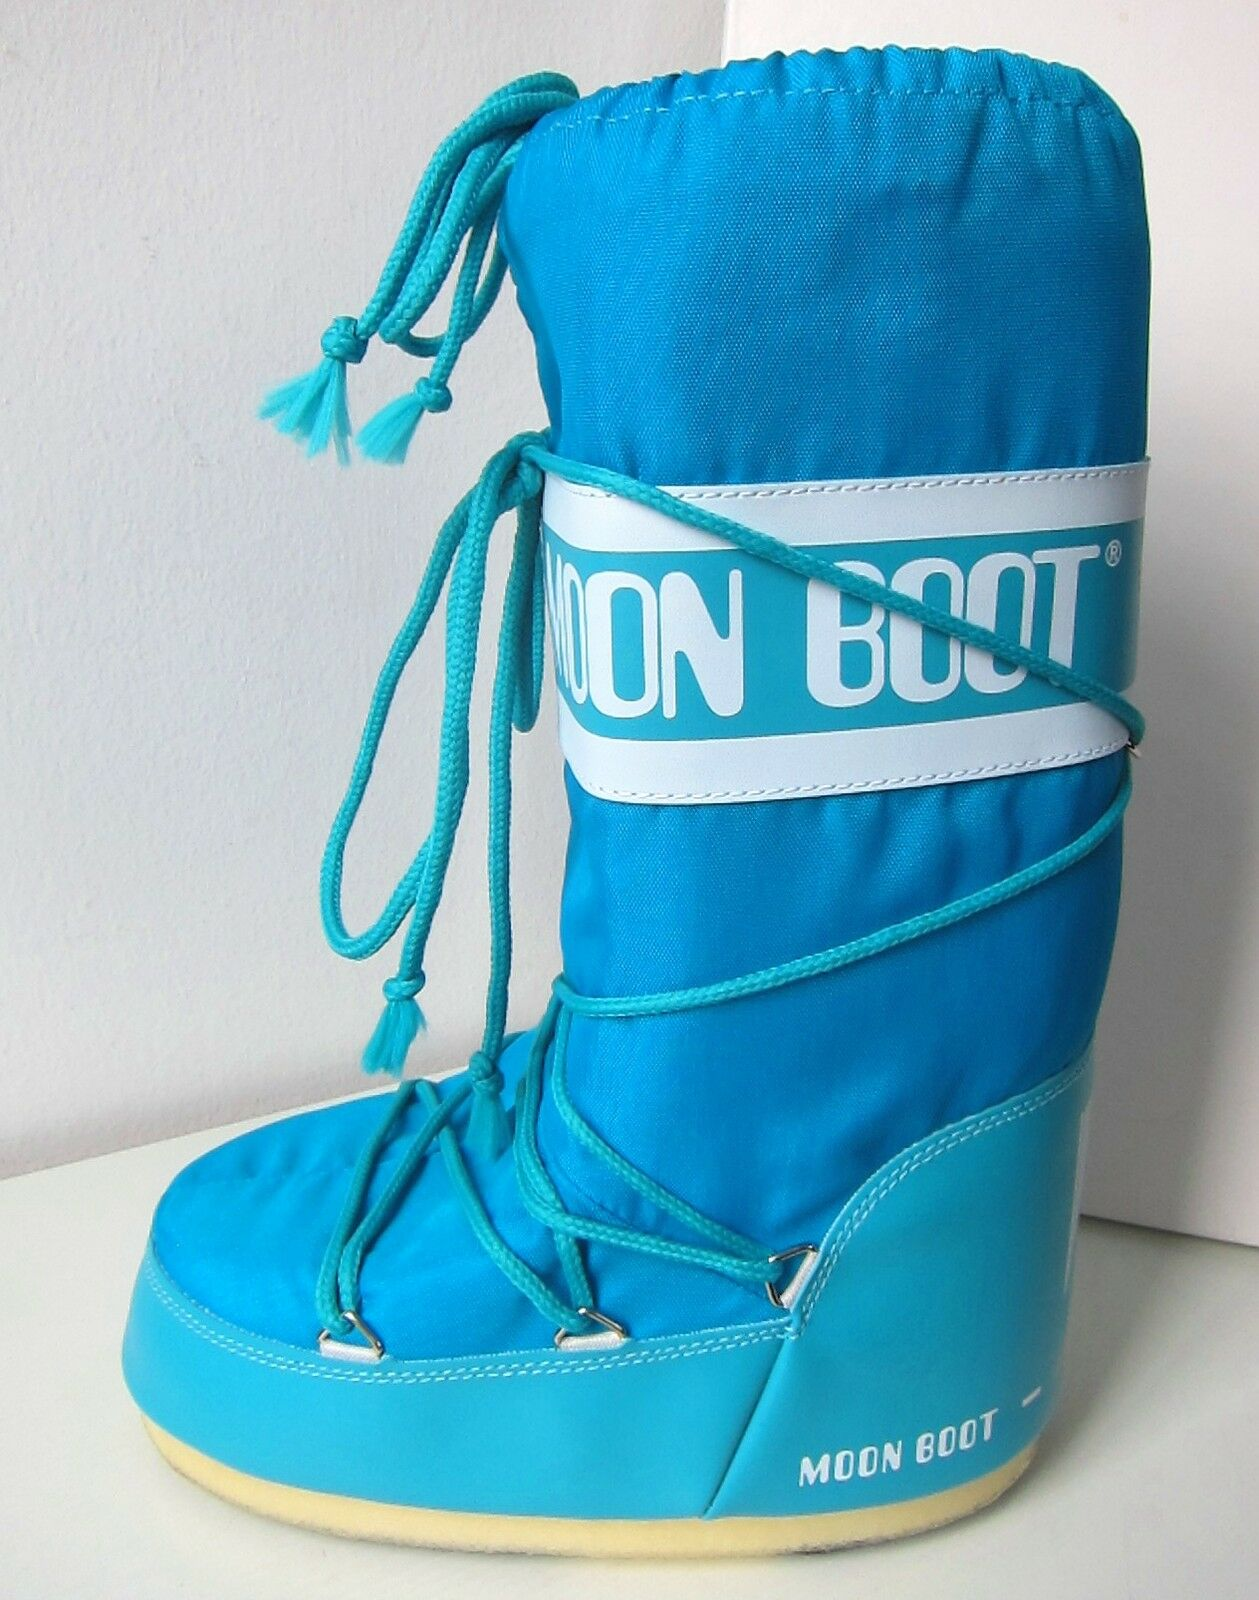 Zapatos especiales con descuento Tecnica MOON BOOT Nylon türkis Gr. 31 - 34 Moon Boots Moonboots turquoise